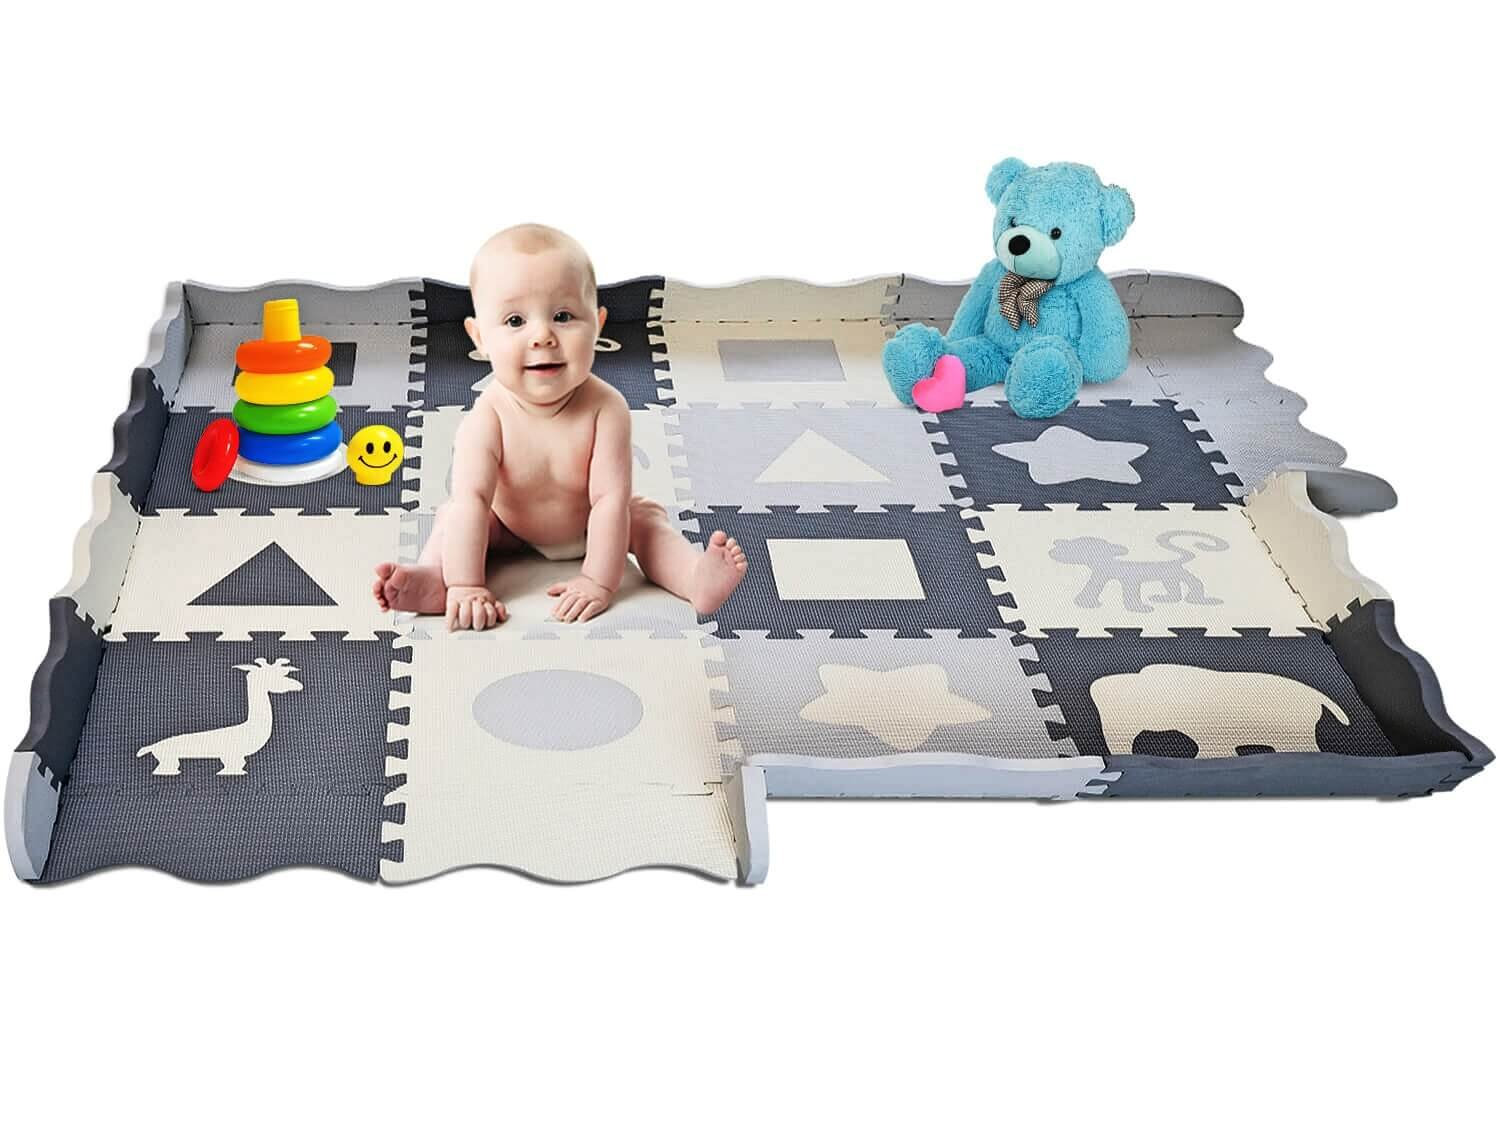 """Soft Foam Baby Play Mat - Interlocking Floor Tiles, Extra Thick (0.80"""")   Non-Toxic, Crawling, Tummy Time Mat   Neutral Colors, Children Play Room & Baby Nurseries   Infant, Baby, Toddler, Kid"""